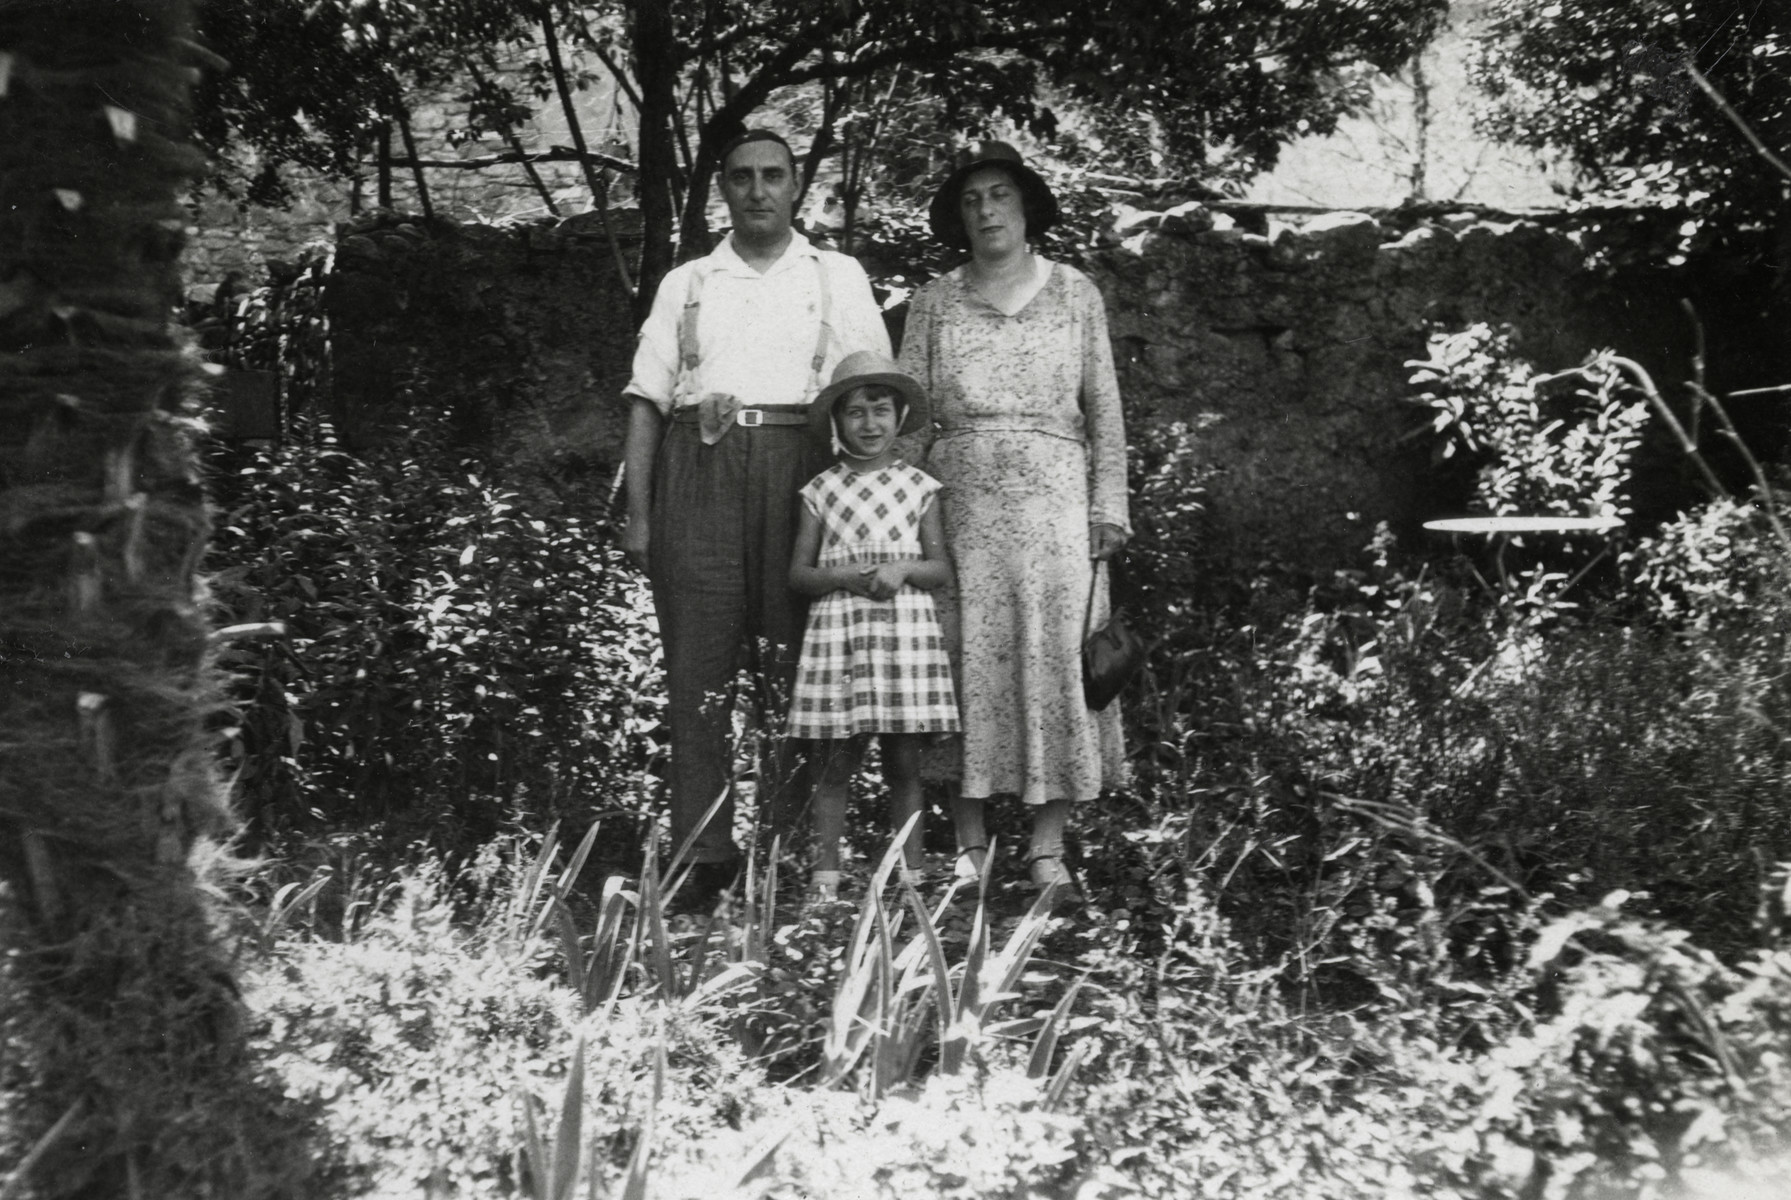 Denise Caraco, her mother Andree and her uncle Emile (her mother's brother) pose in a garden while spending their summer holidays in the village of Dieulefit.